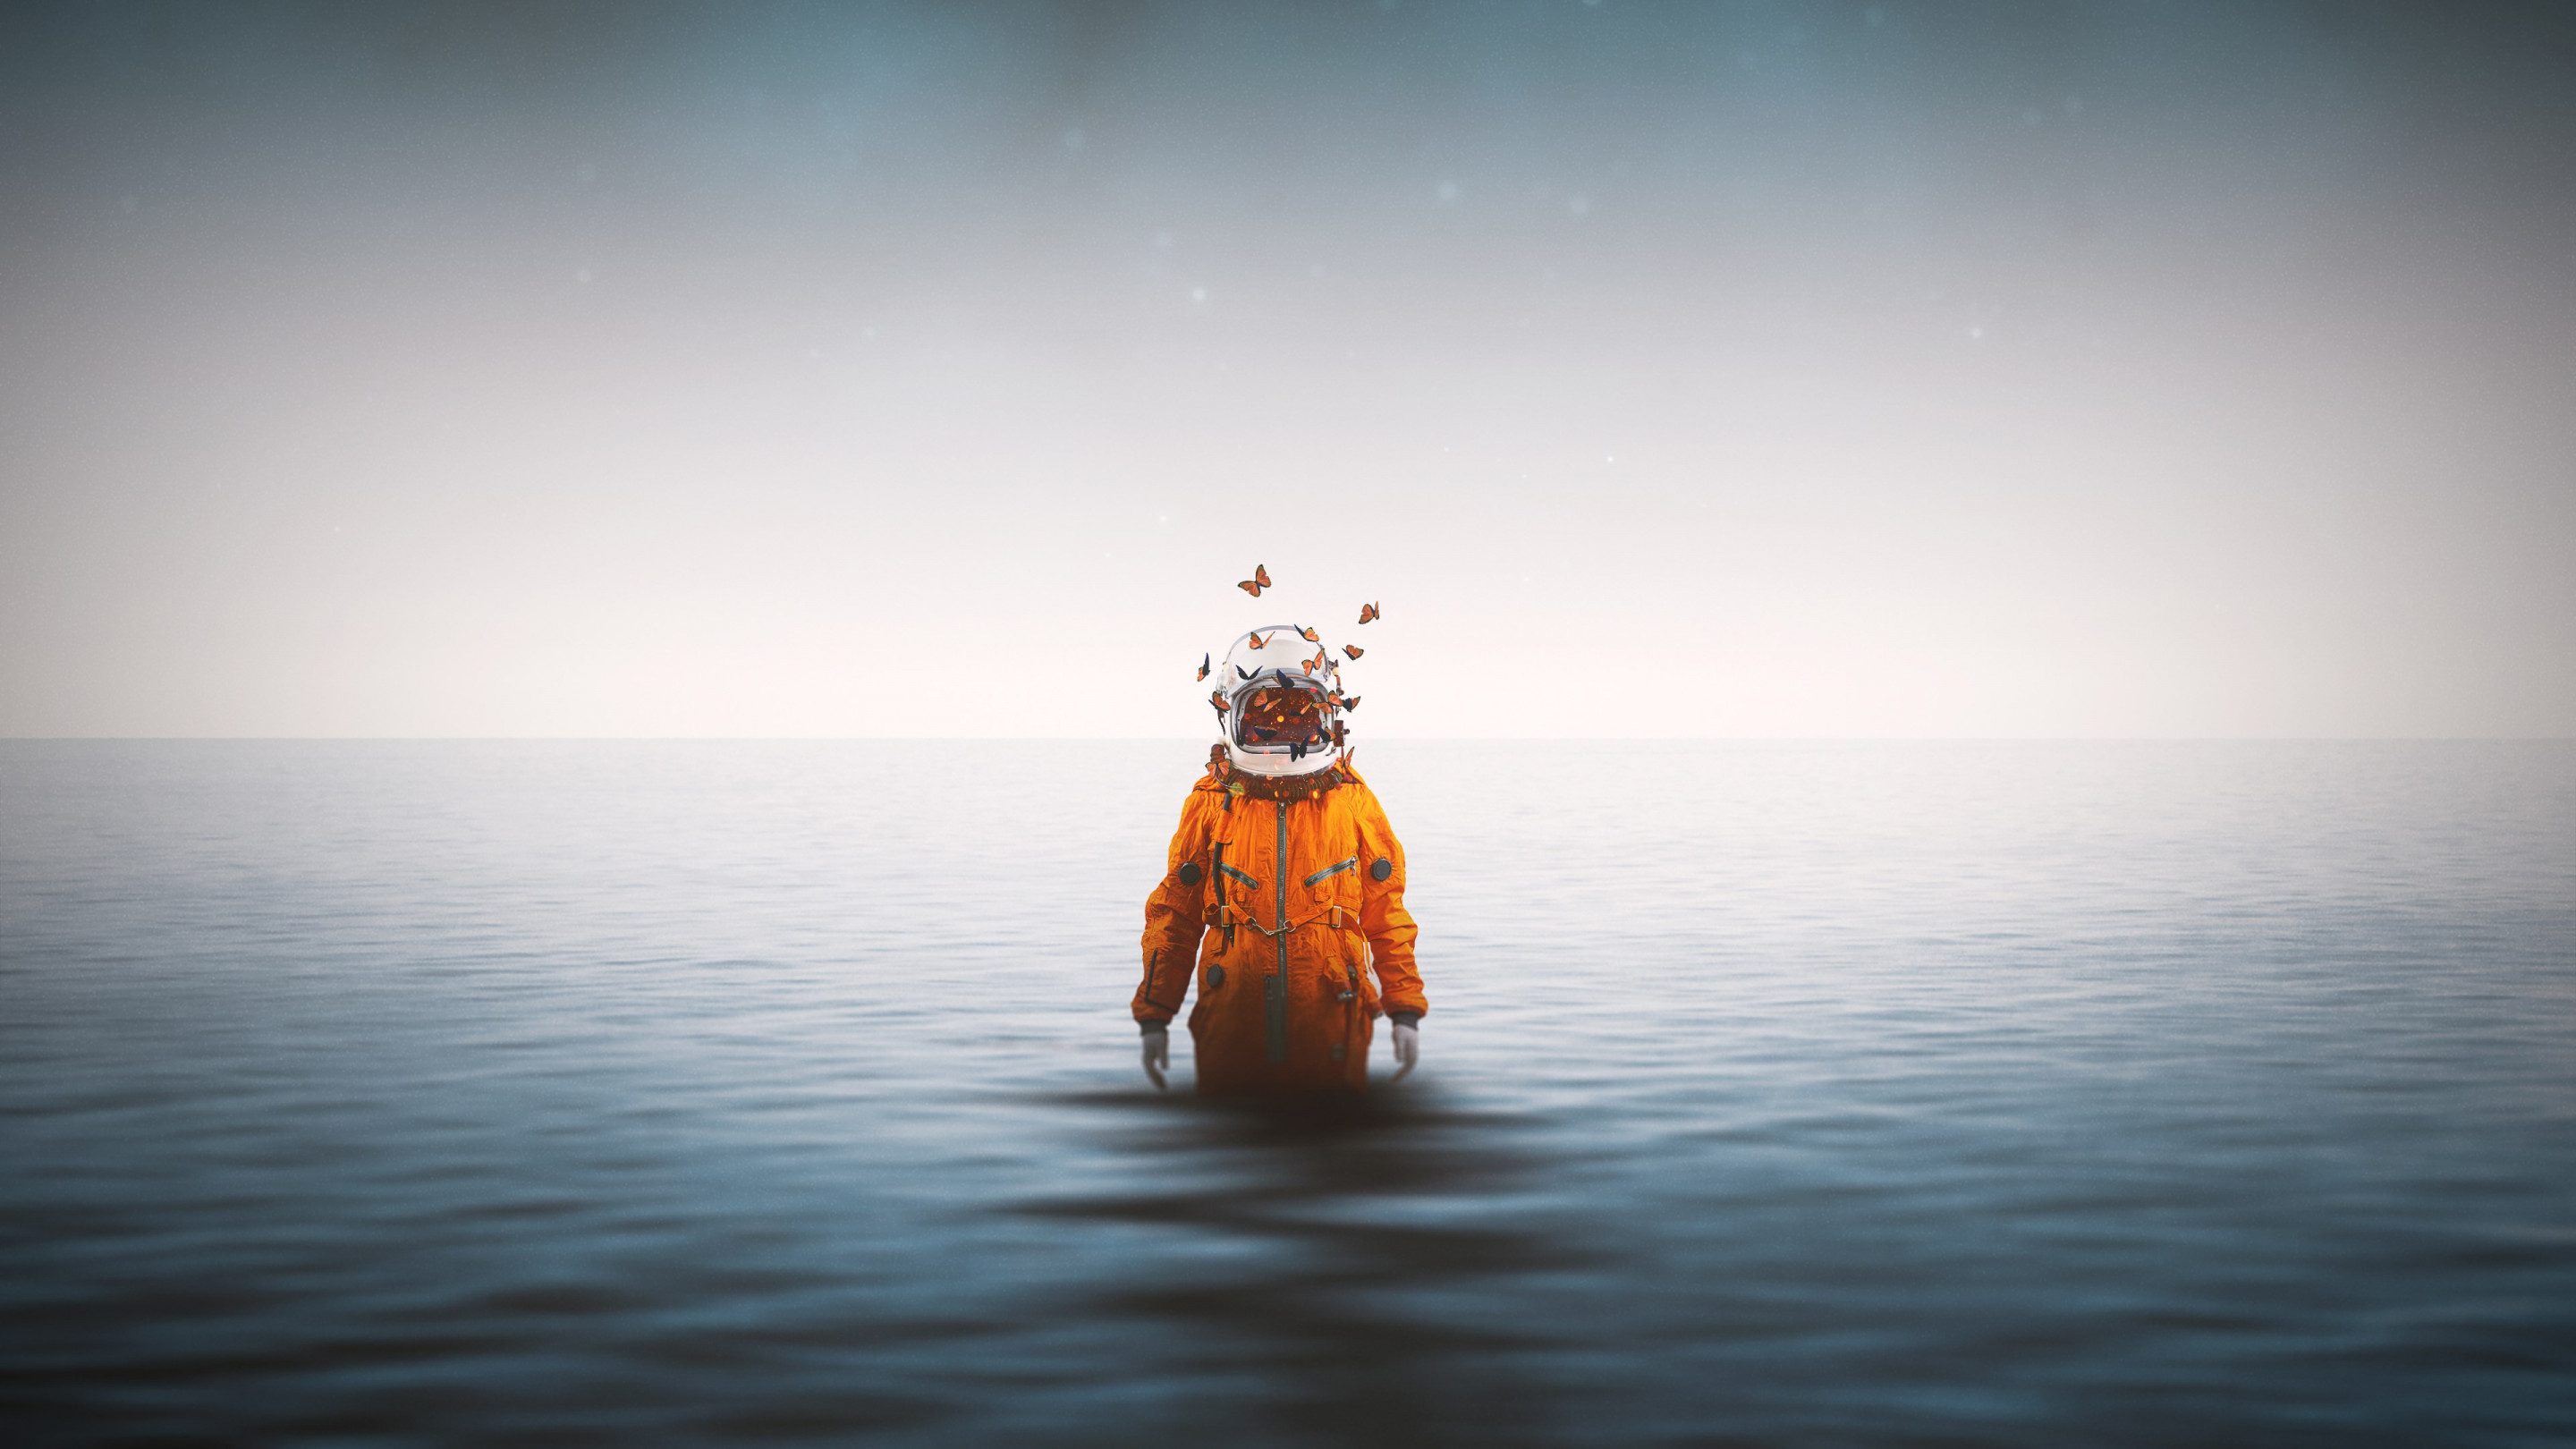 Lonely astronaut | 2880x1620 wallpaper